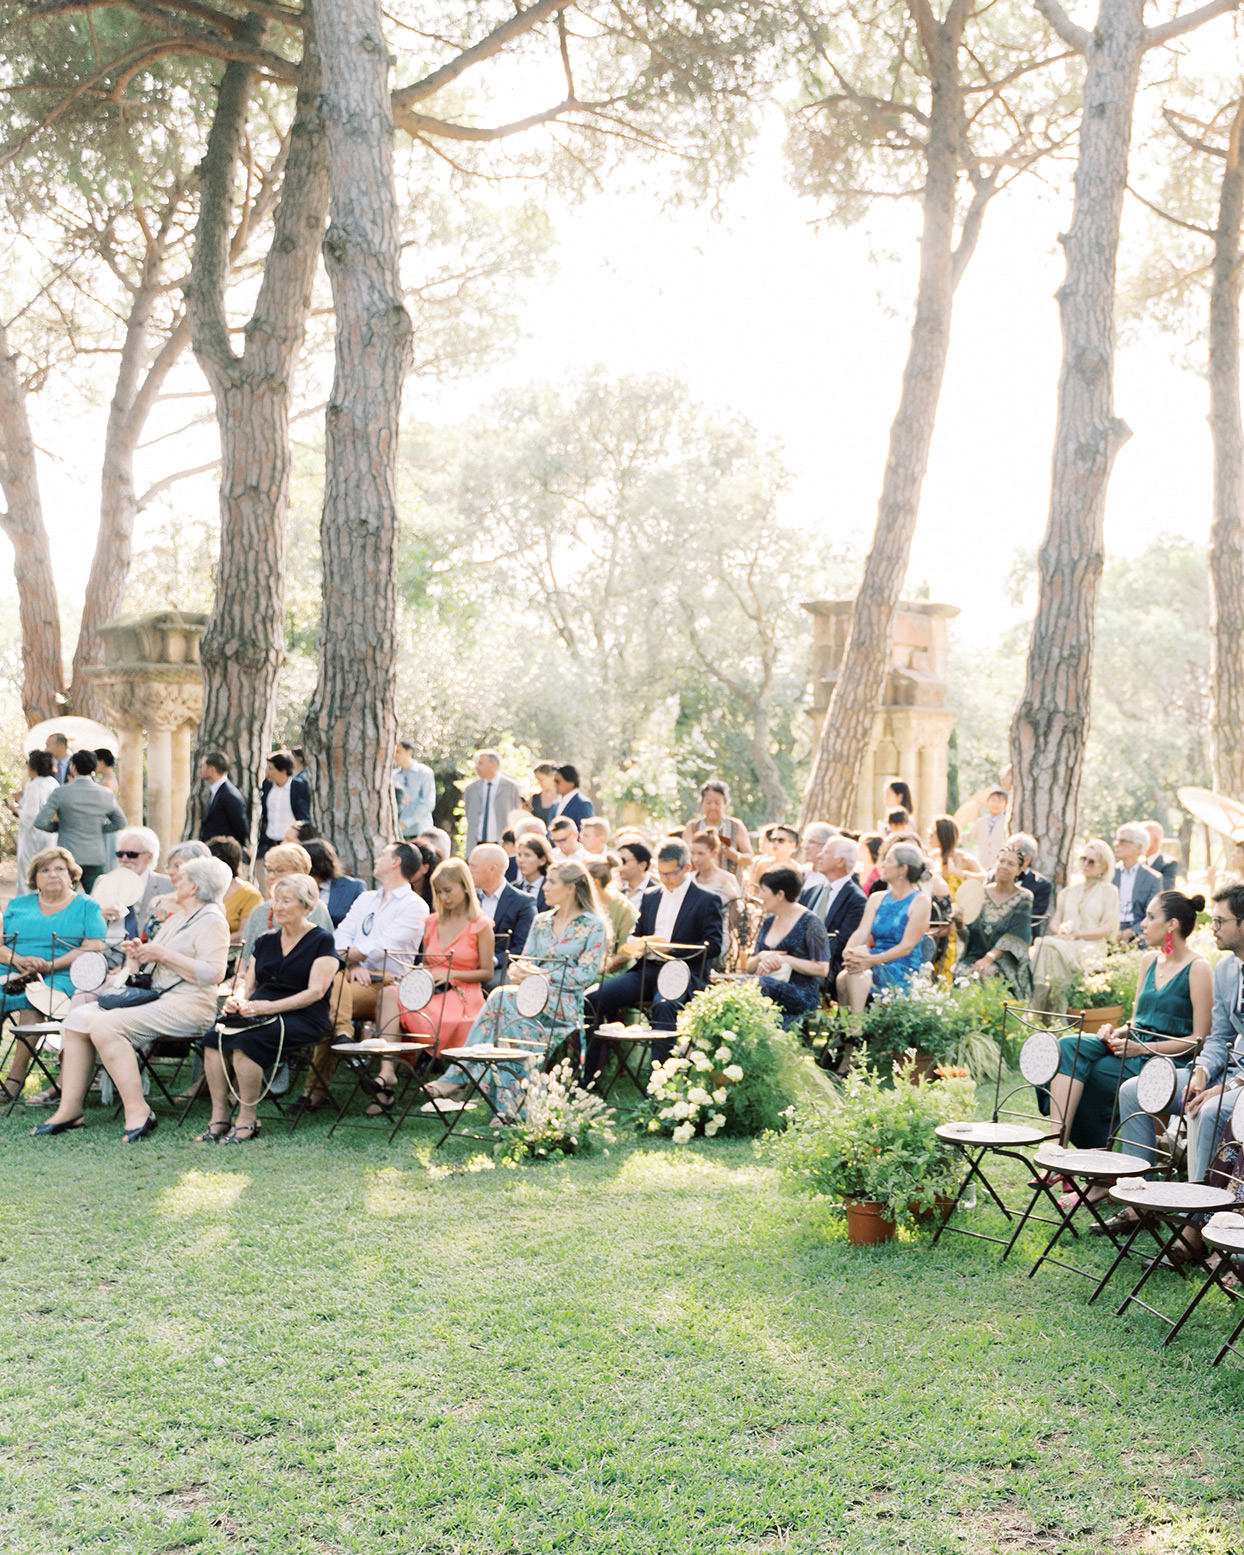 alyssa macia wedding guests seated in chairs for outdoor ceremony